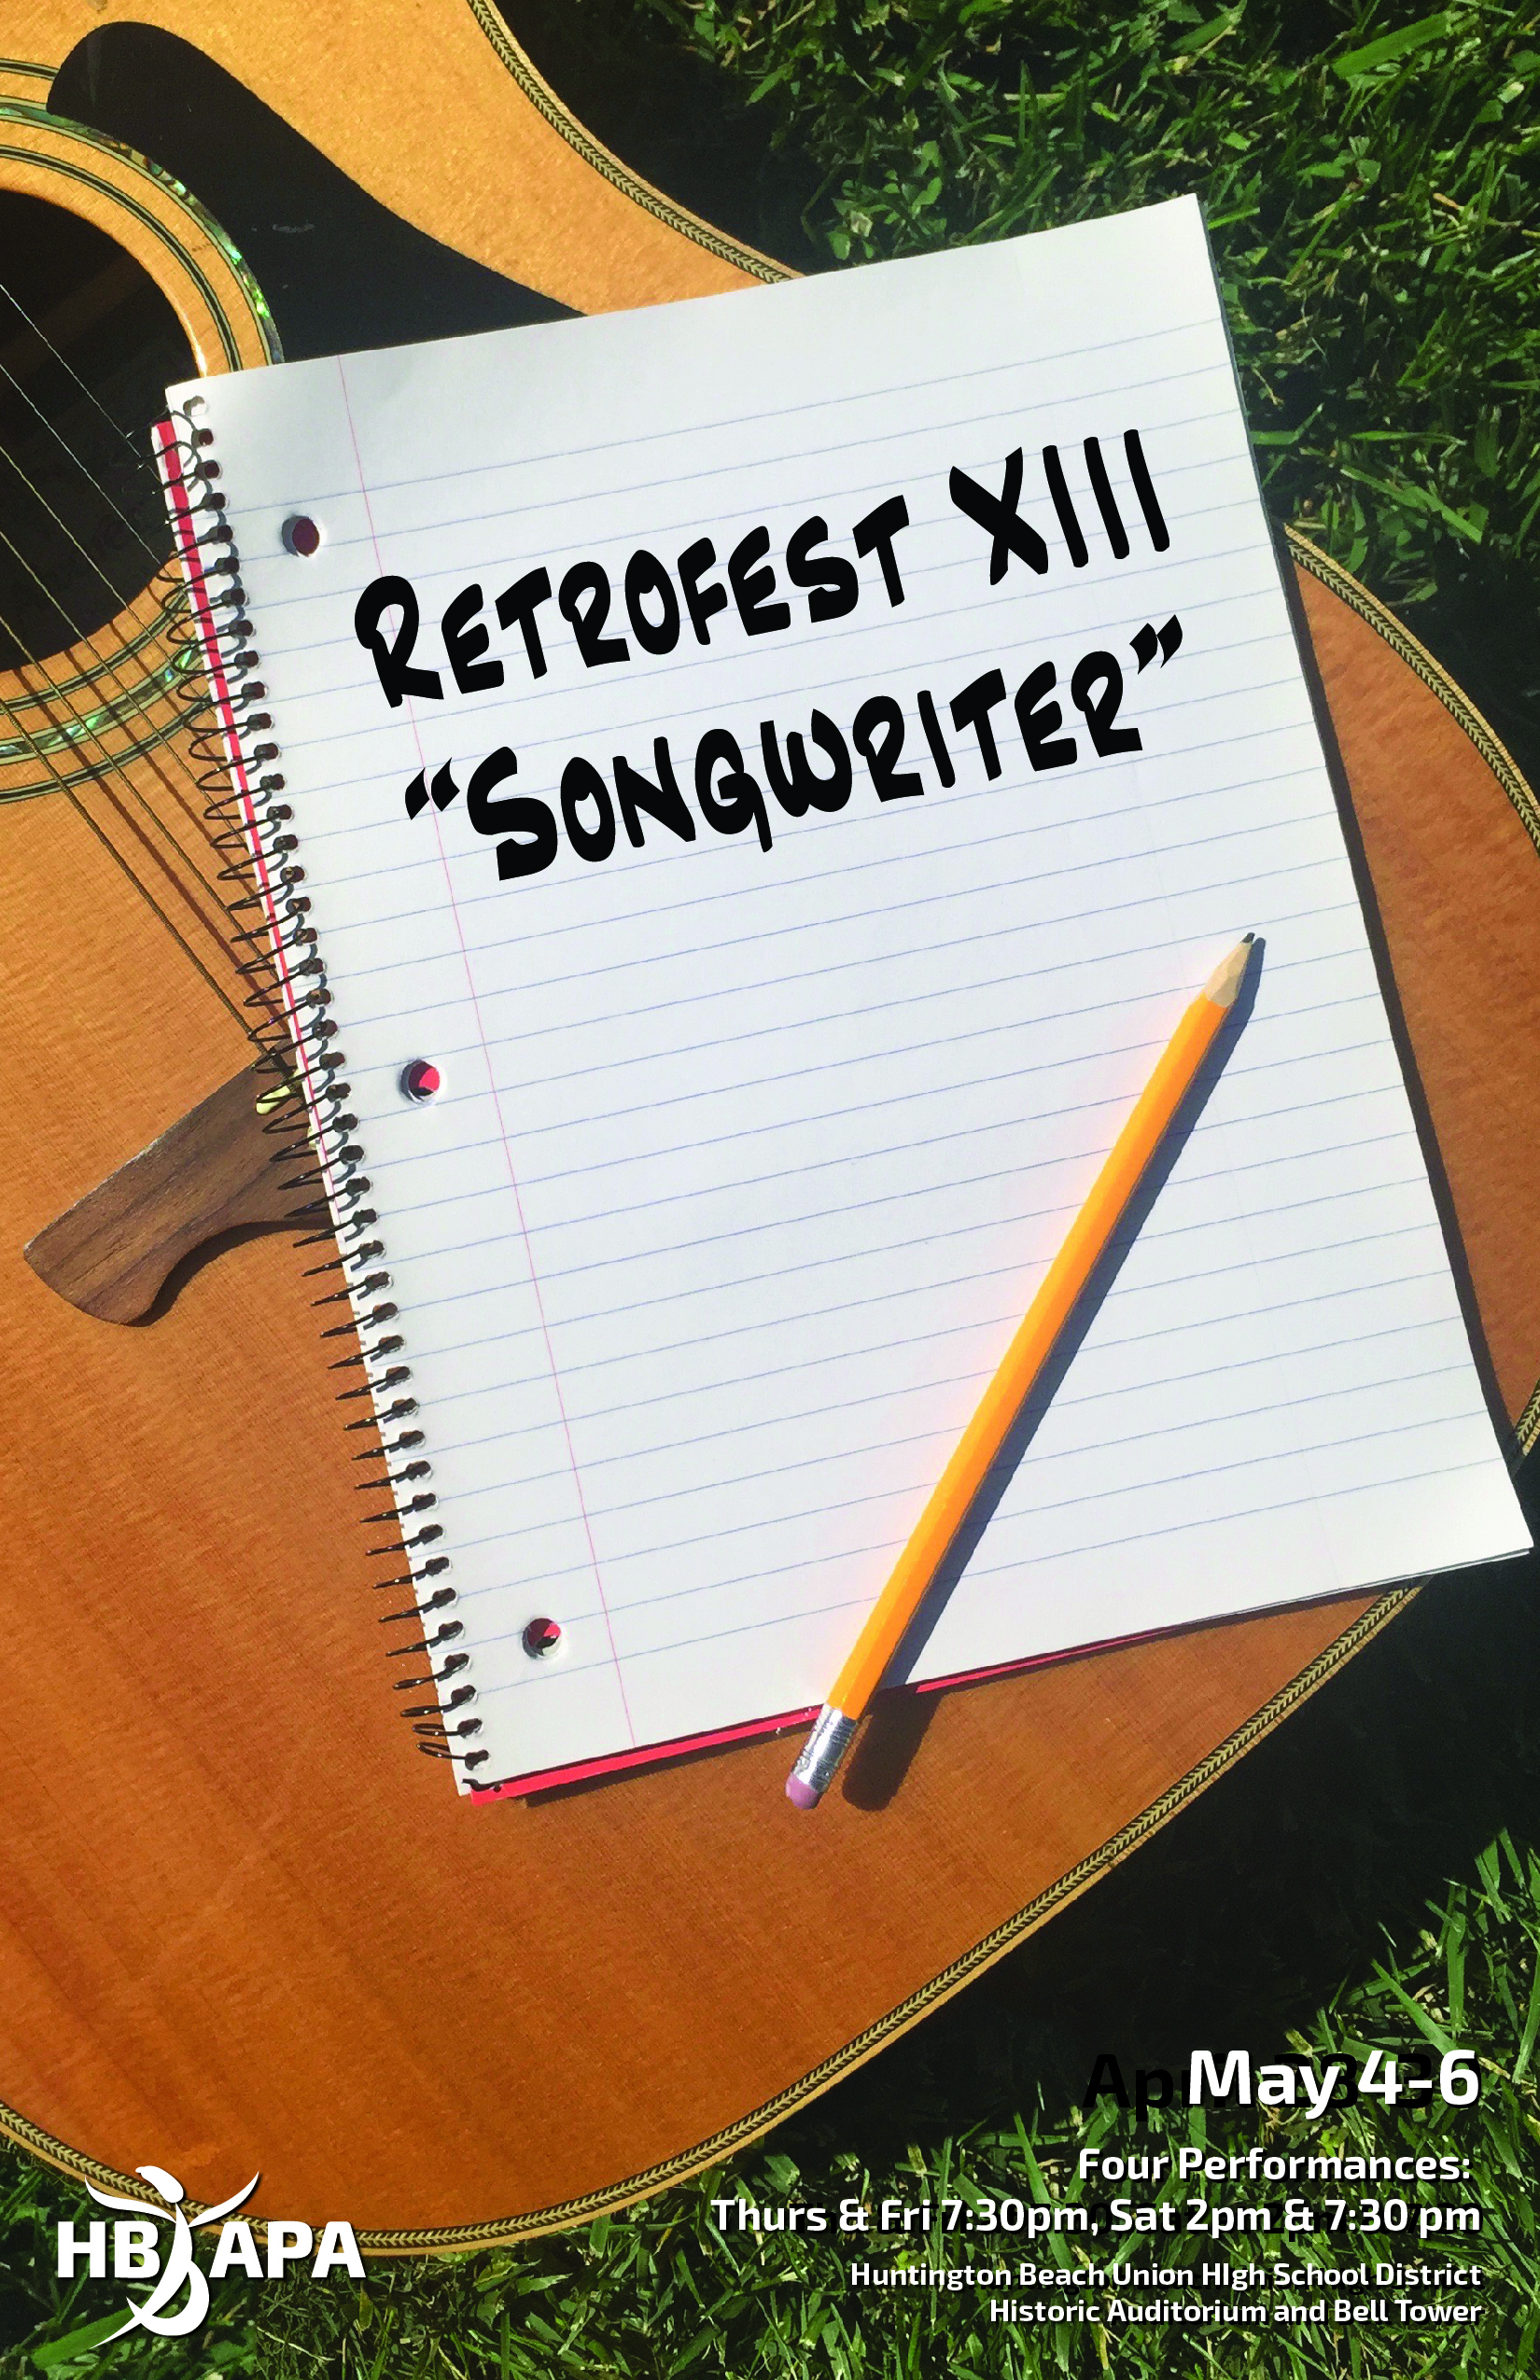 Retrofest XIII: Songwriter